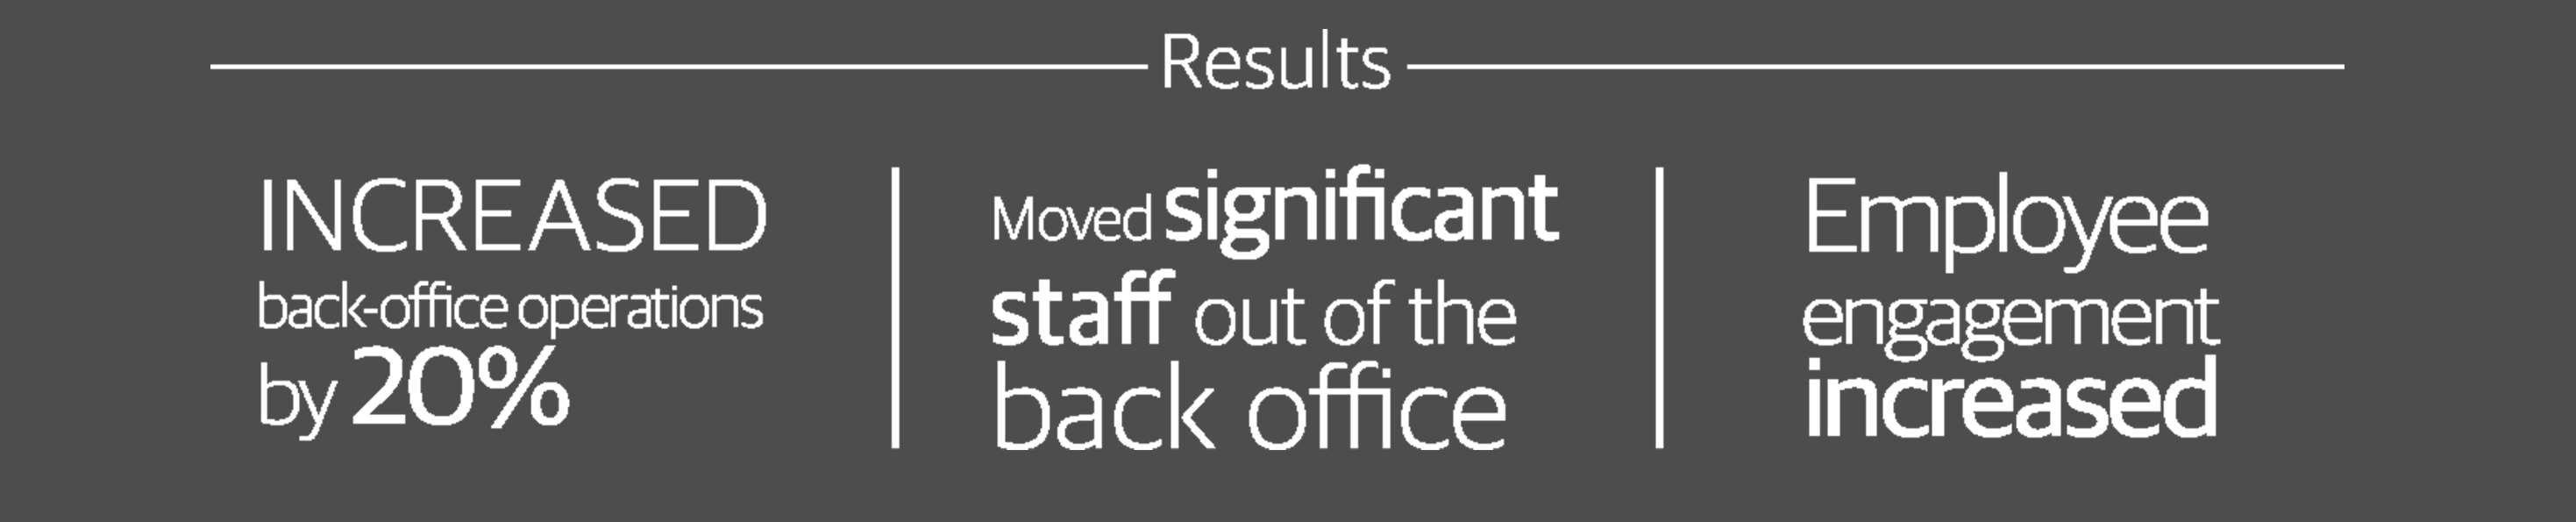 We teamed up to look at their situation and help improve staff utilization.